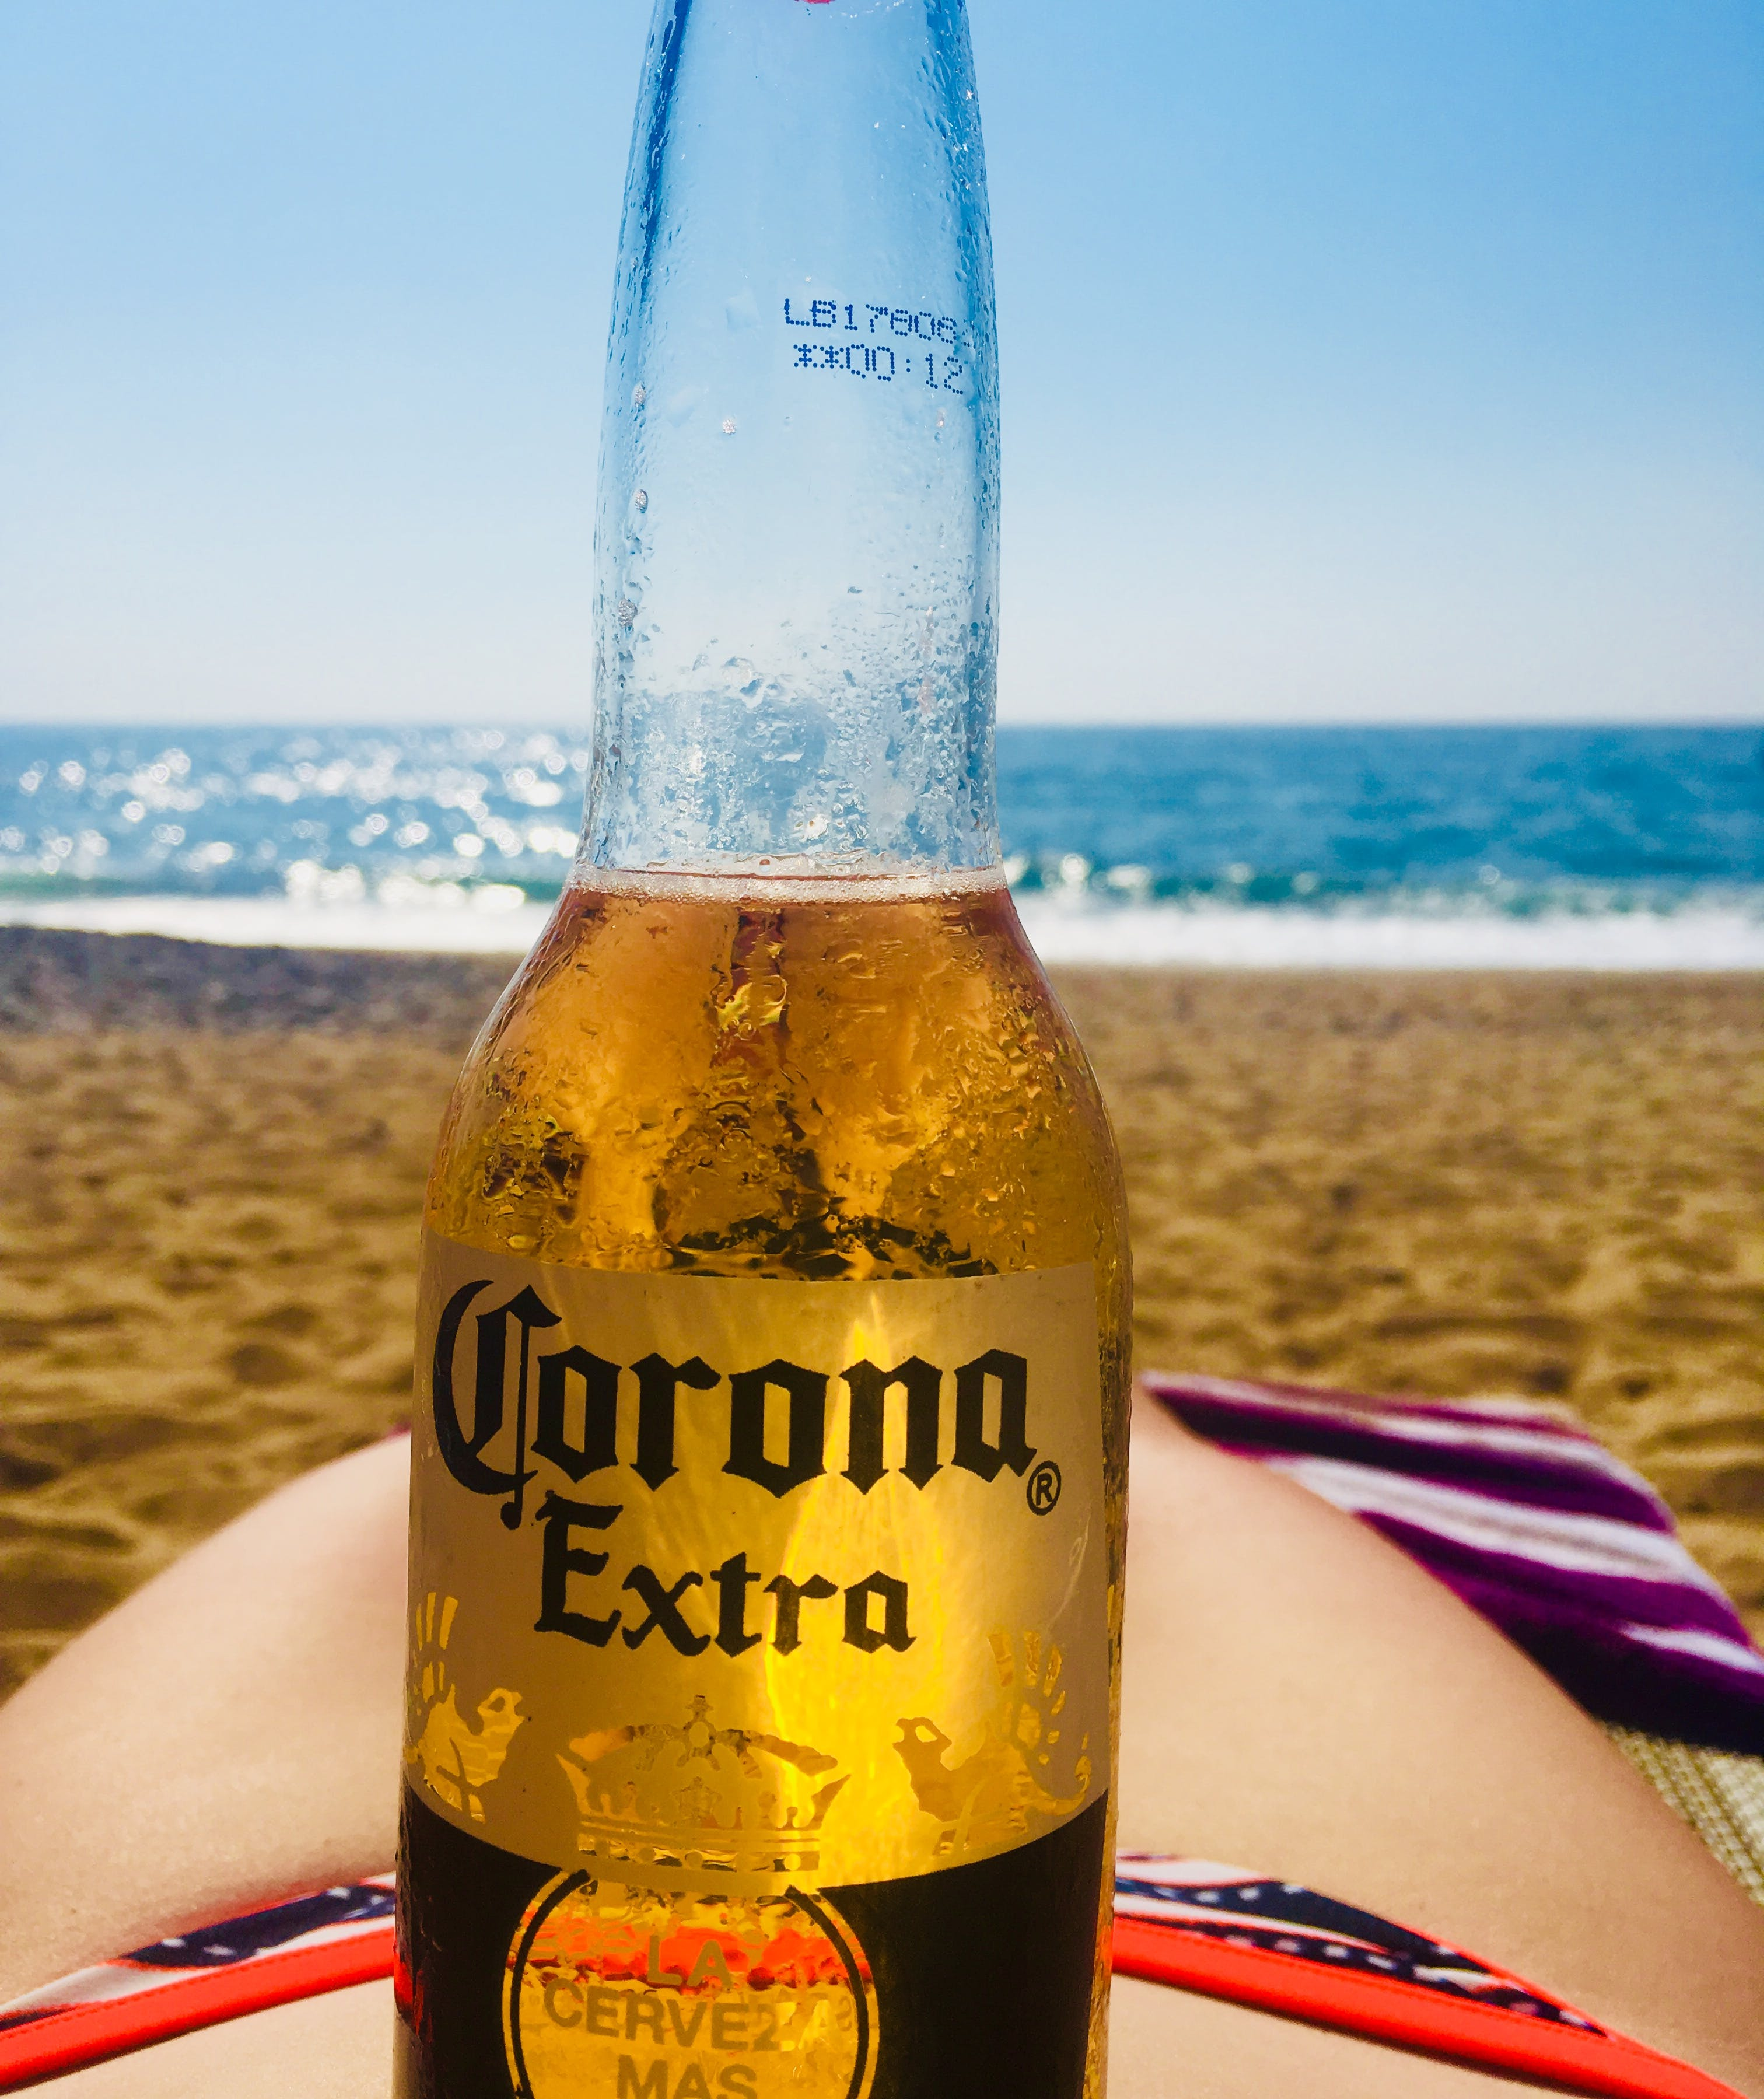 Free stock photo of beer and beach, Beer on stomach, corona beer